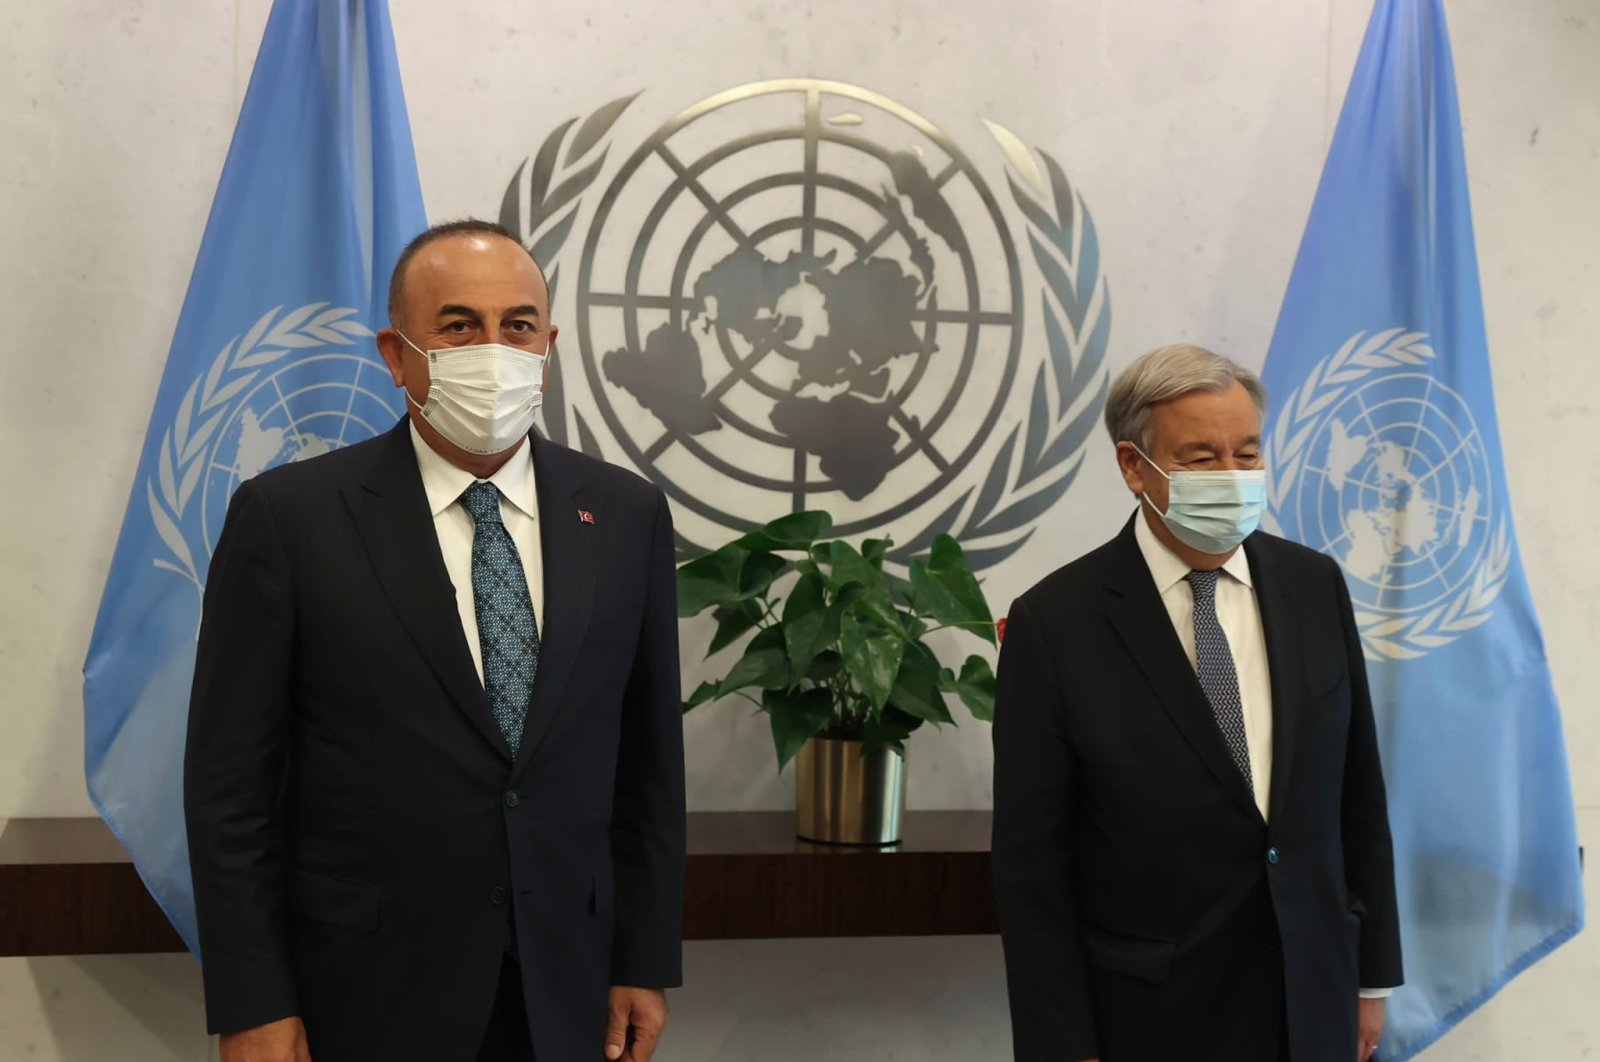 Foreign Minister Mevlüt Çavuşoğlu (L) and U.N. Secretary-General Antonio Guterres pose for a picture at the U.N. headquarters in New York City, New York, U.S., Sept. 17, 2021. (IHA Photo)